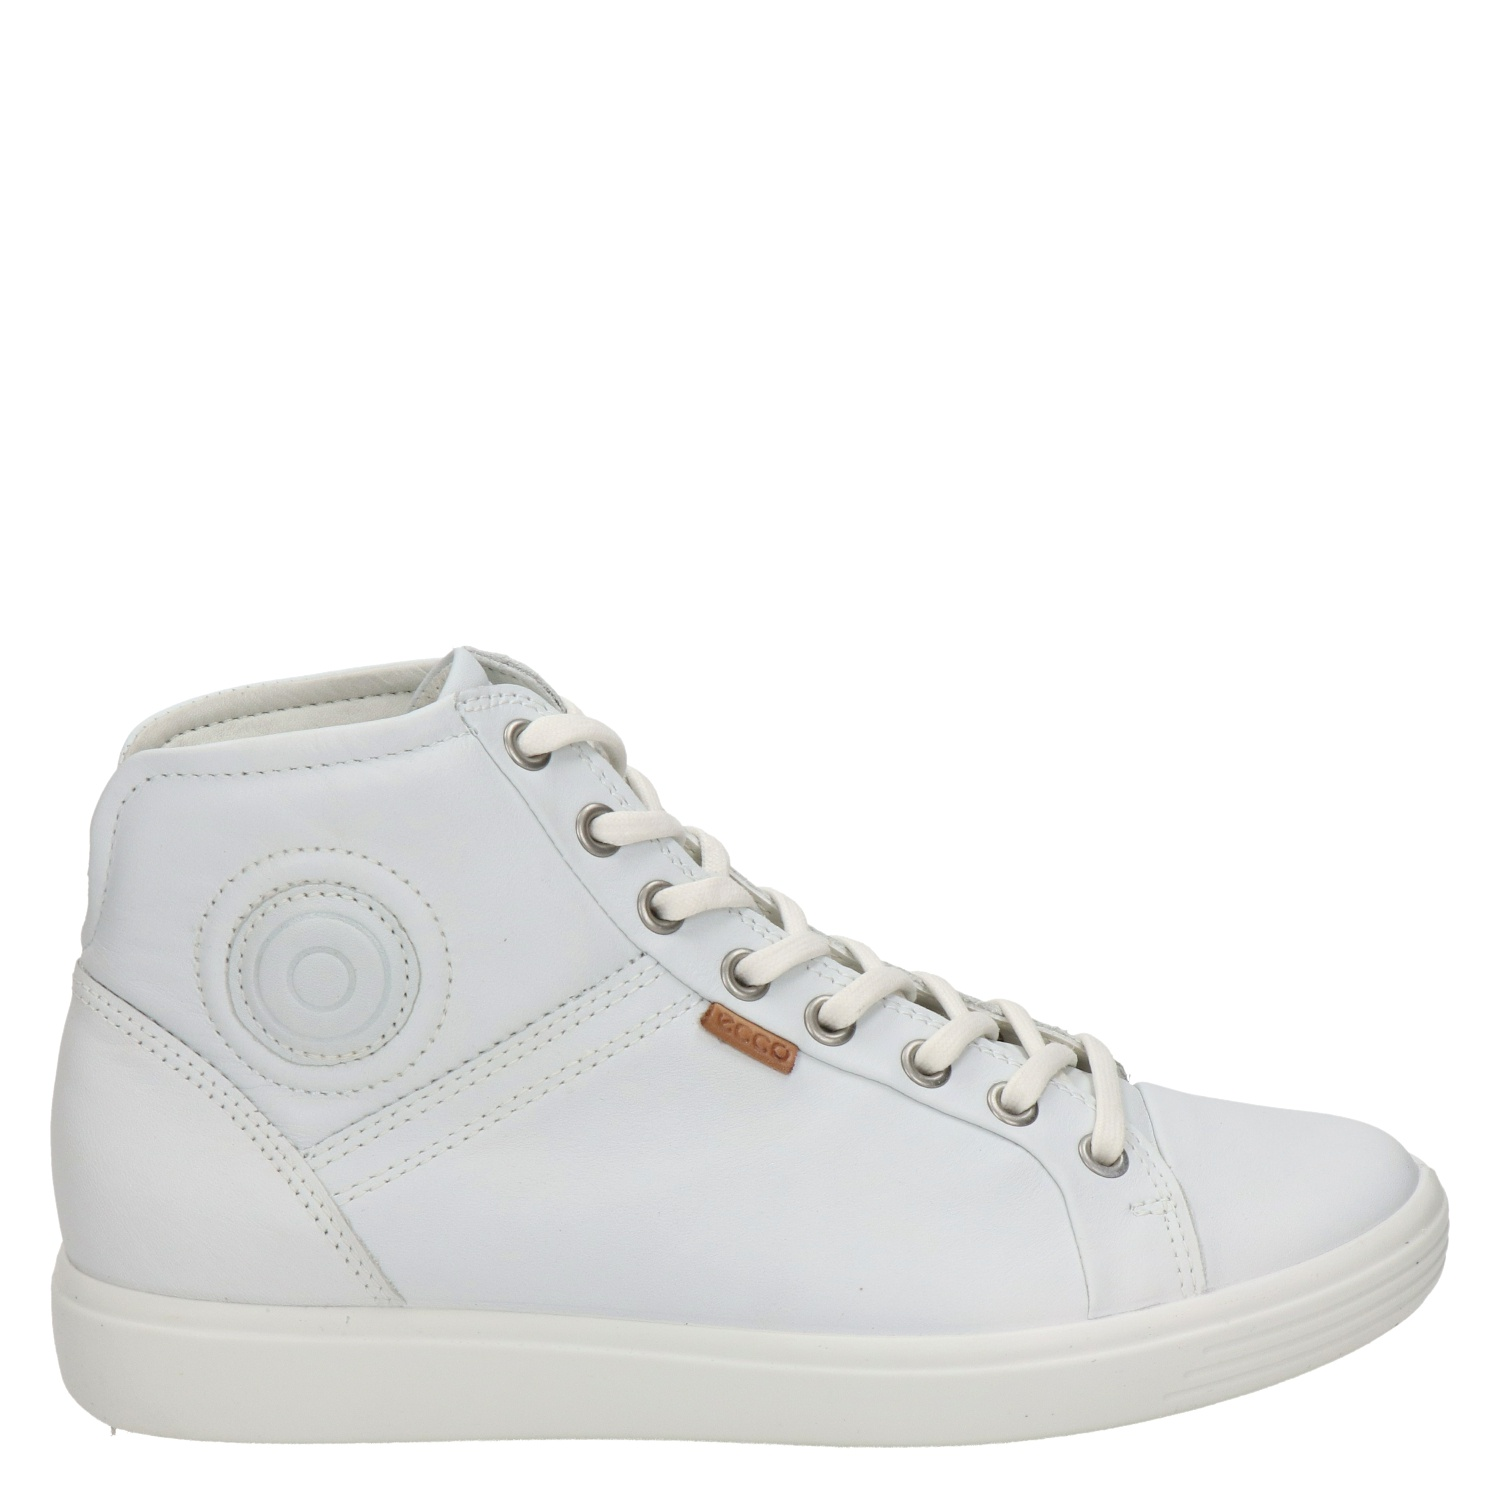 Ecco Soft 7 dames hoge sneakers wit